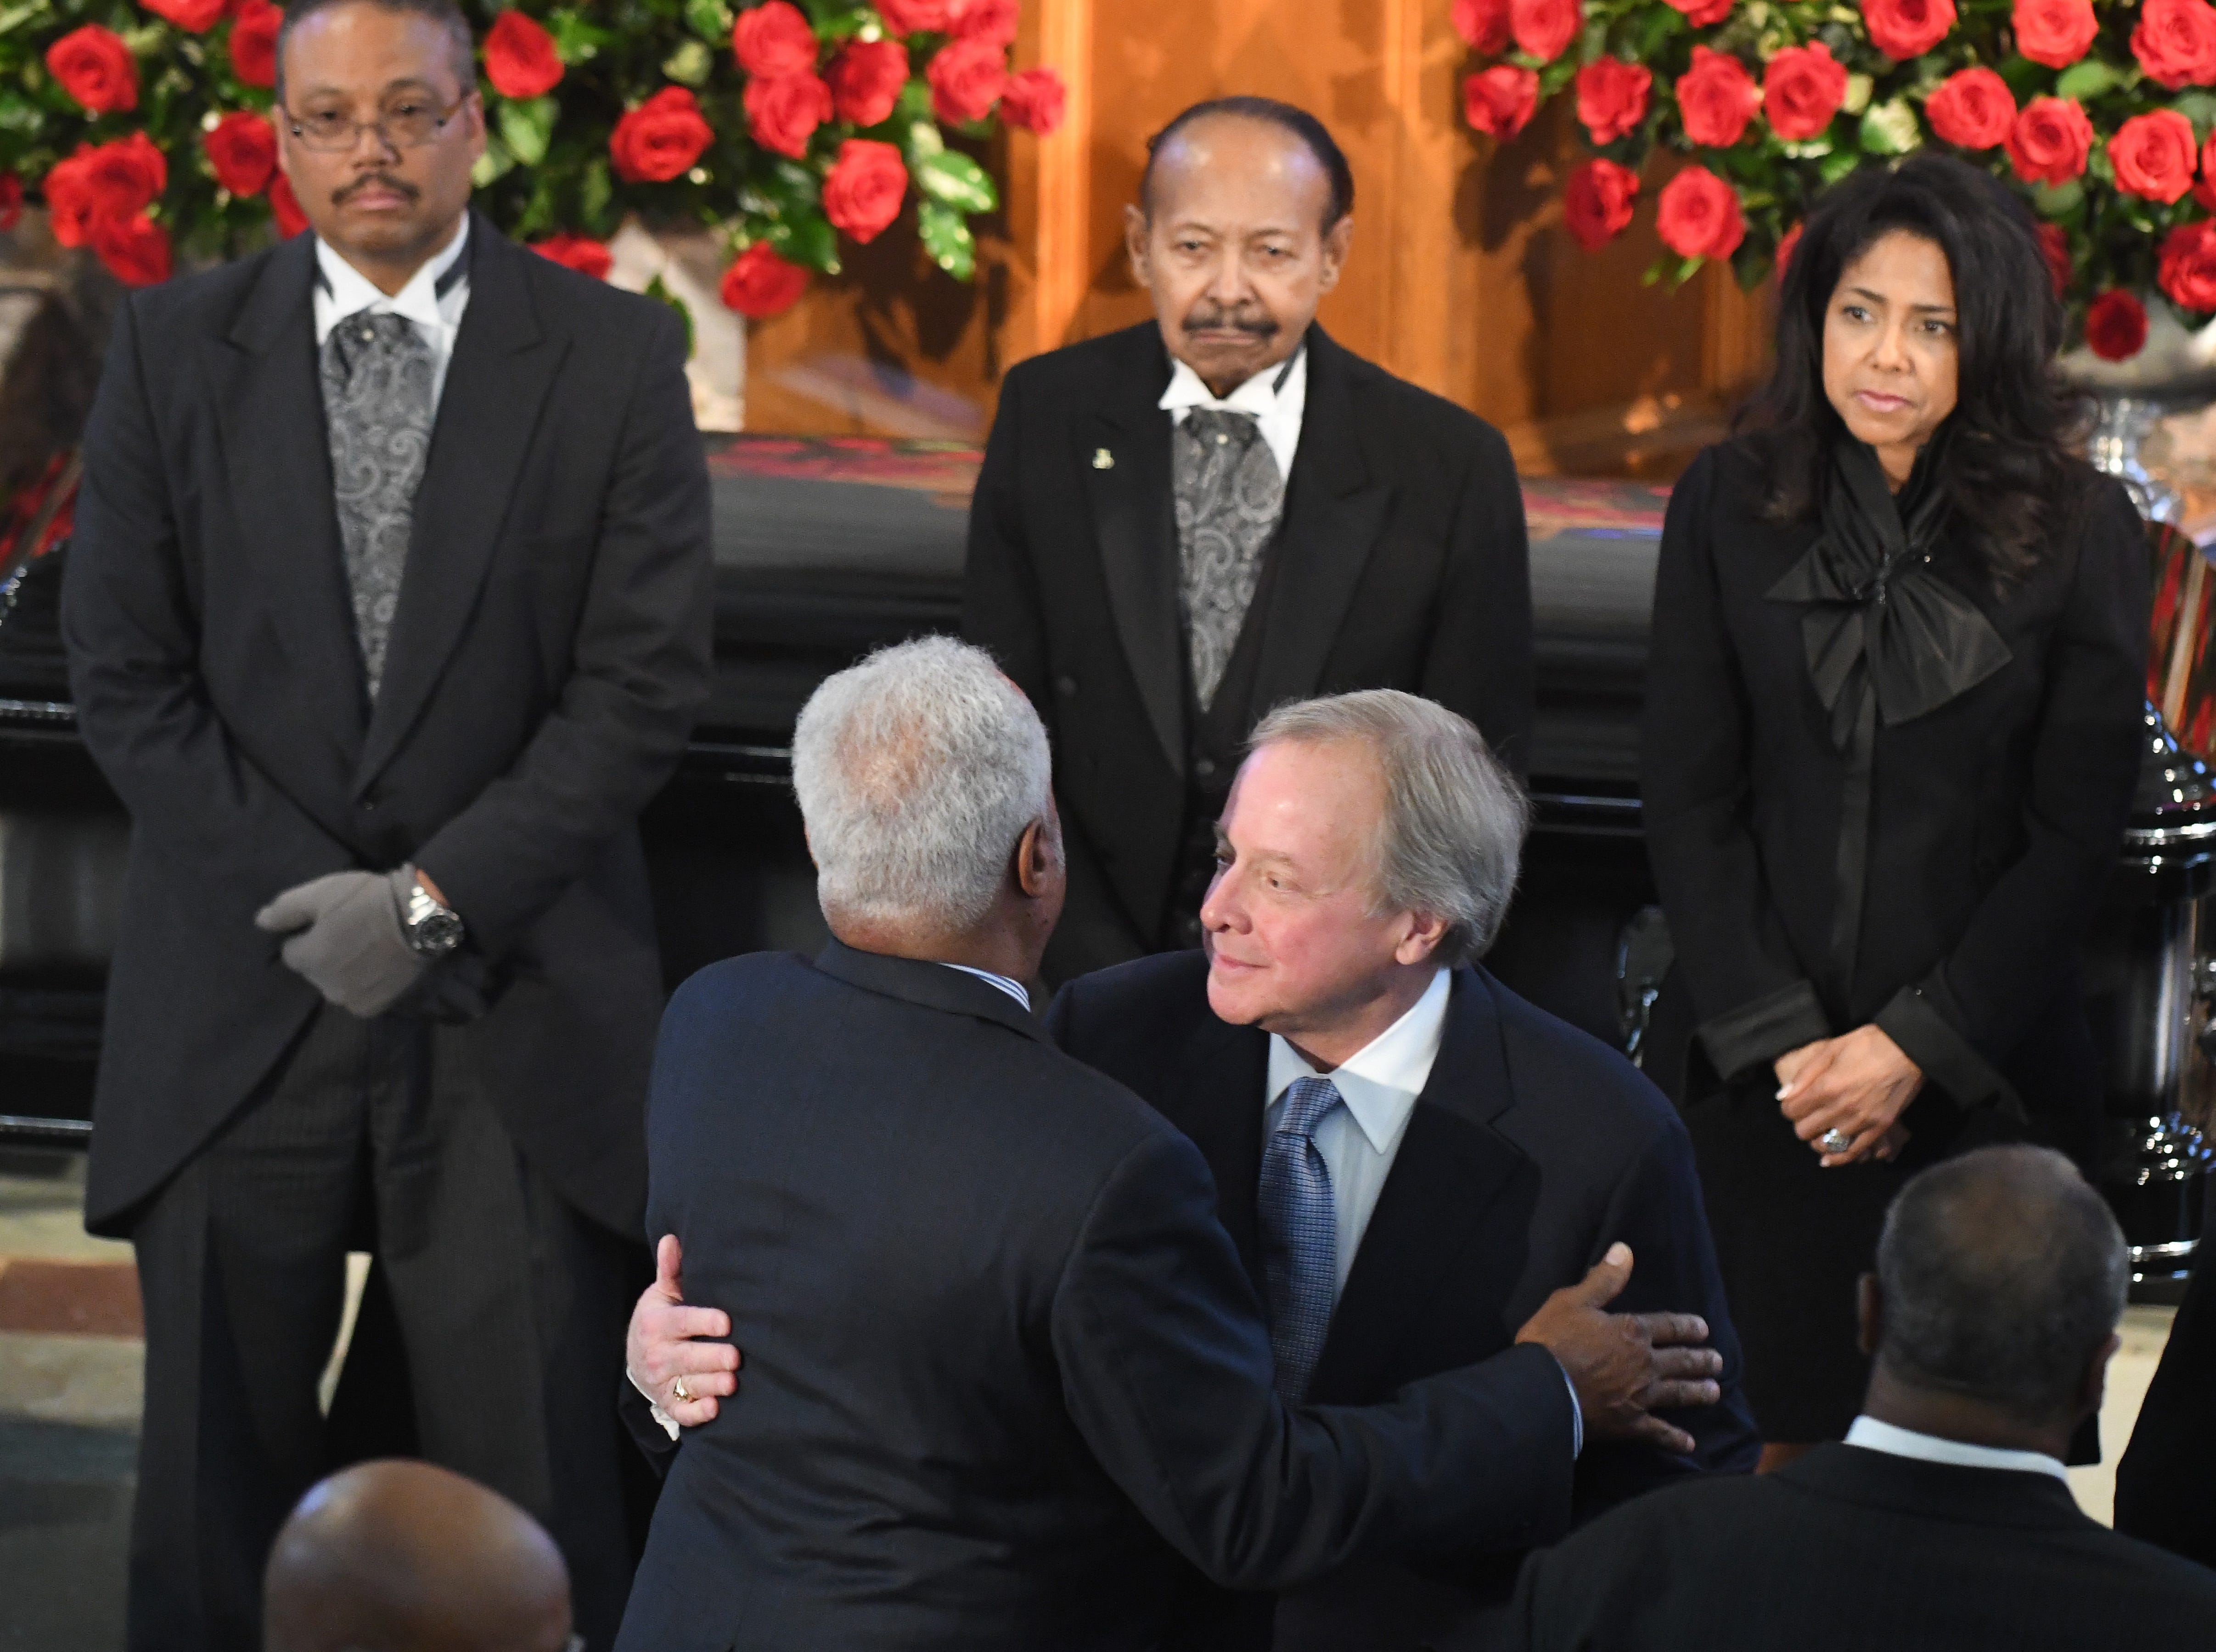 A close friend of Judge Keith's, Edsel Ford II hugs arriving guests during the funeral of Judge Damon J. Keith.